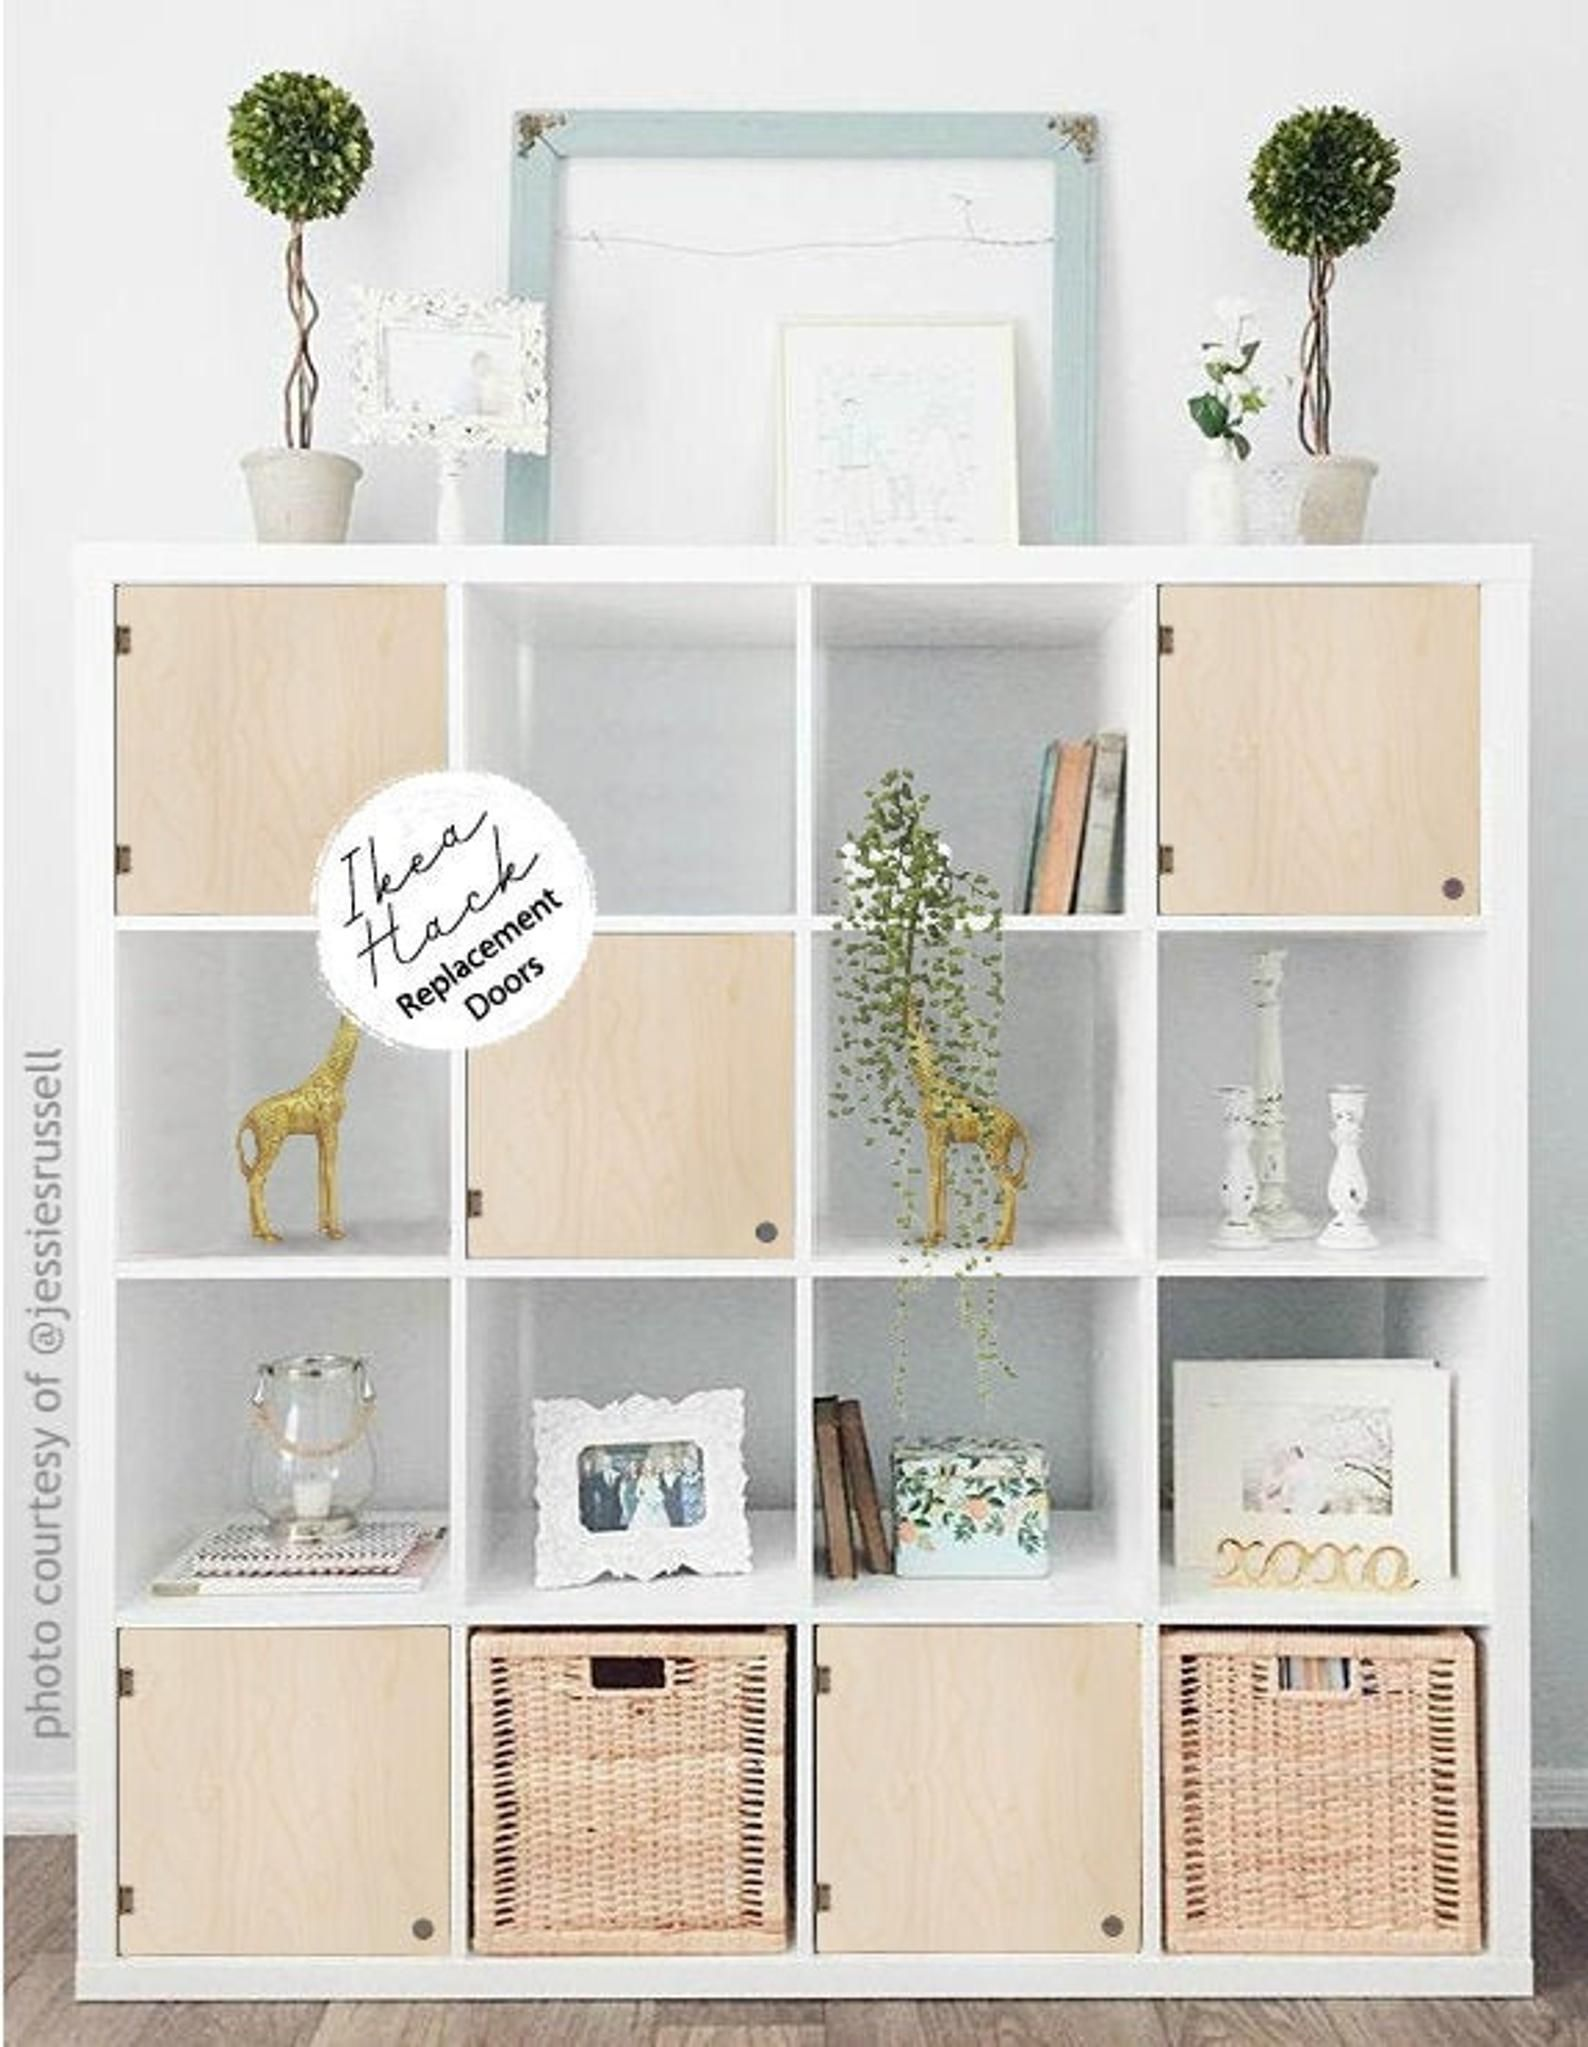 Easy No Tools Door Ikea Target Cube Shelves  Etsy in 5  Cube